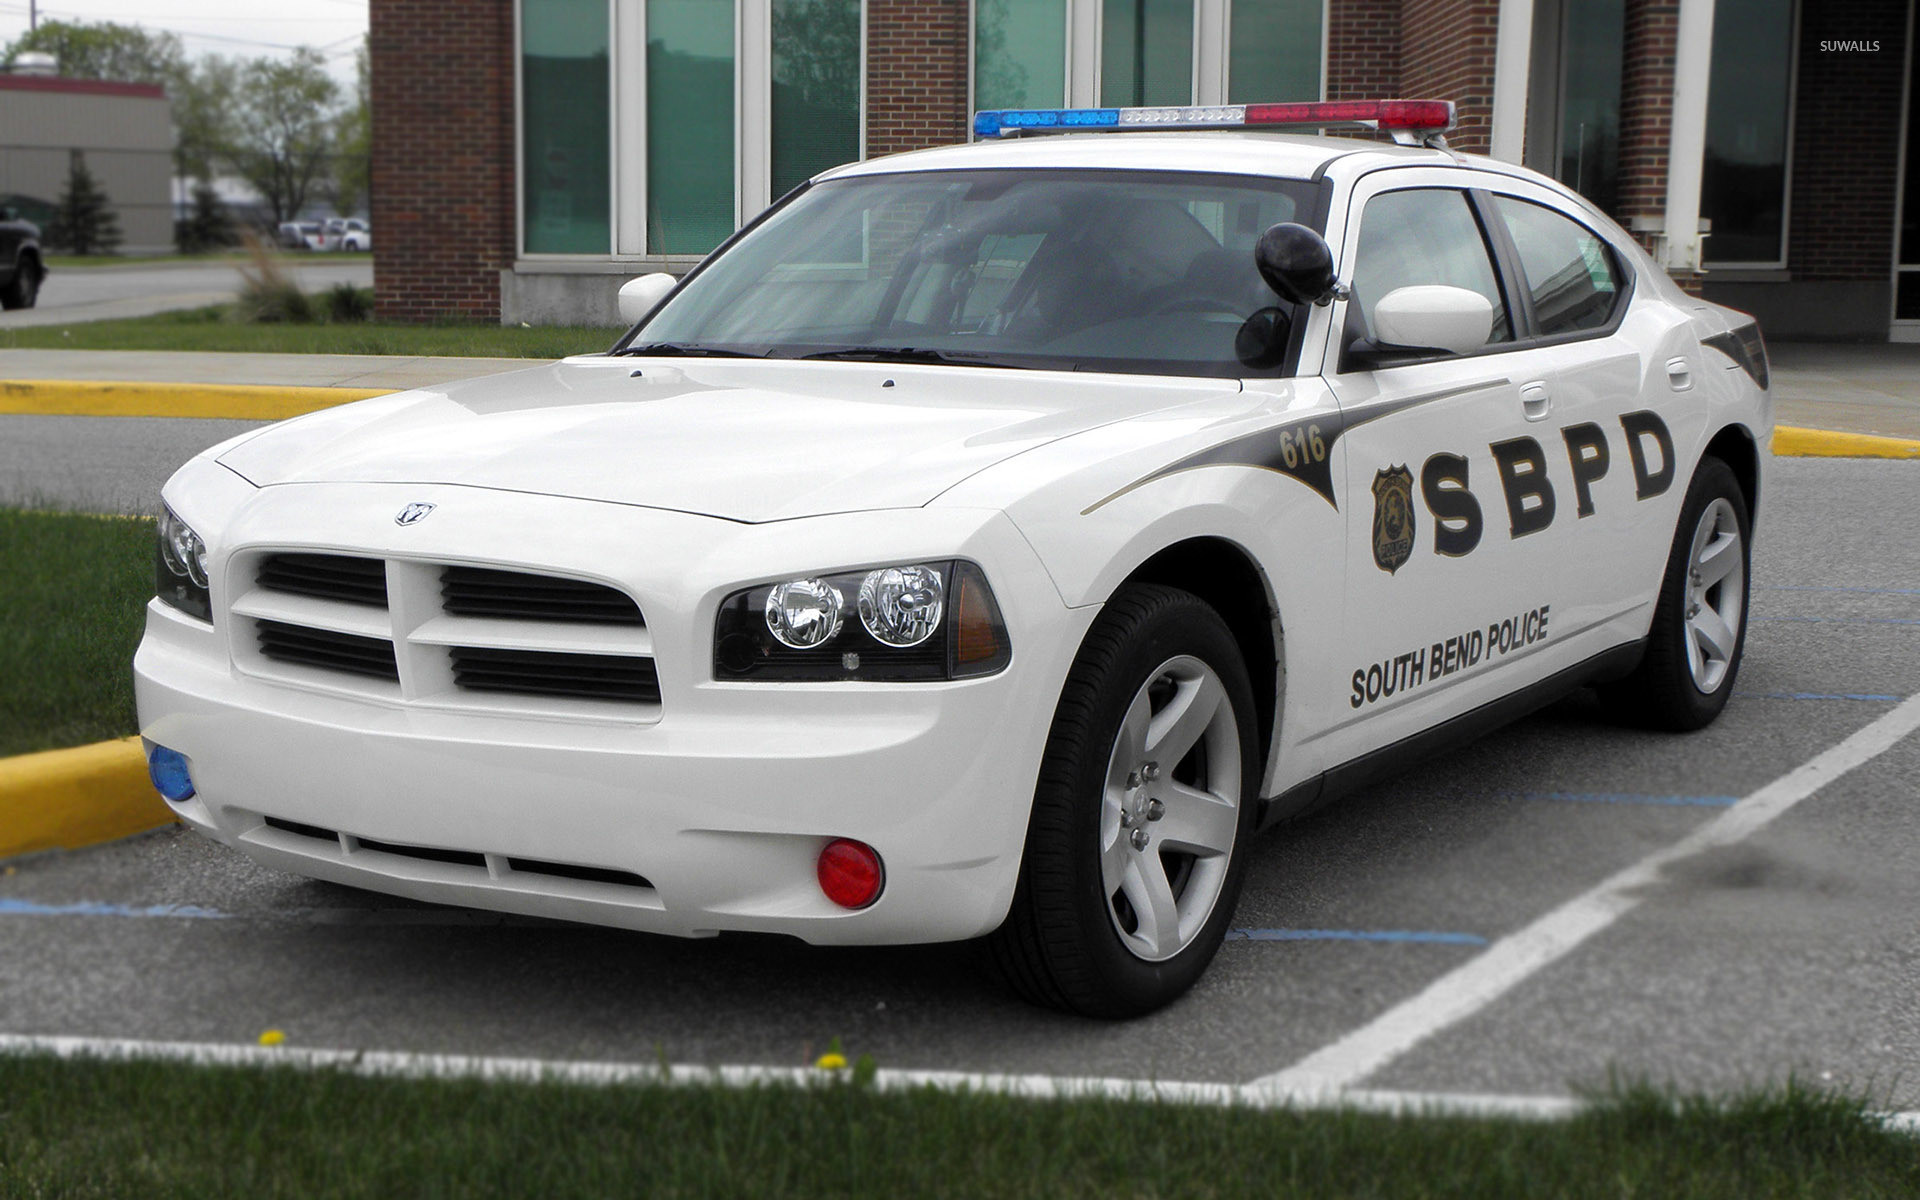 1920x1200 2009 Dodge Charger Police car wallpaper  jpg